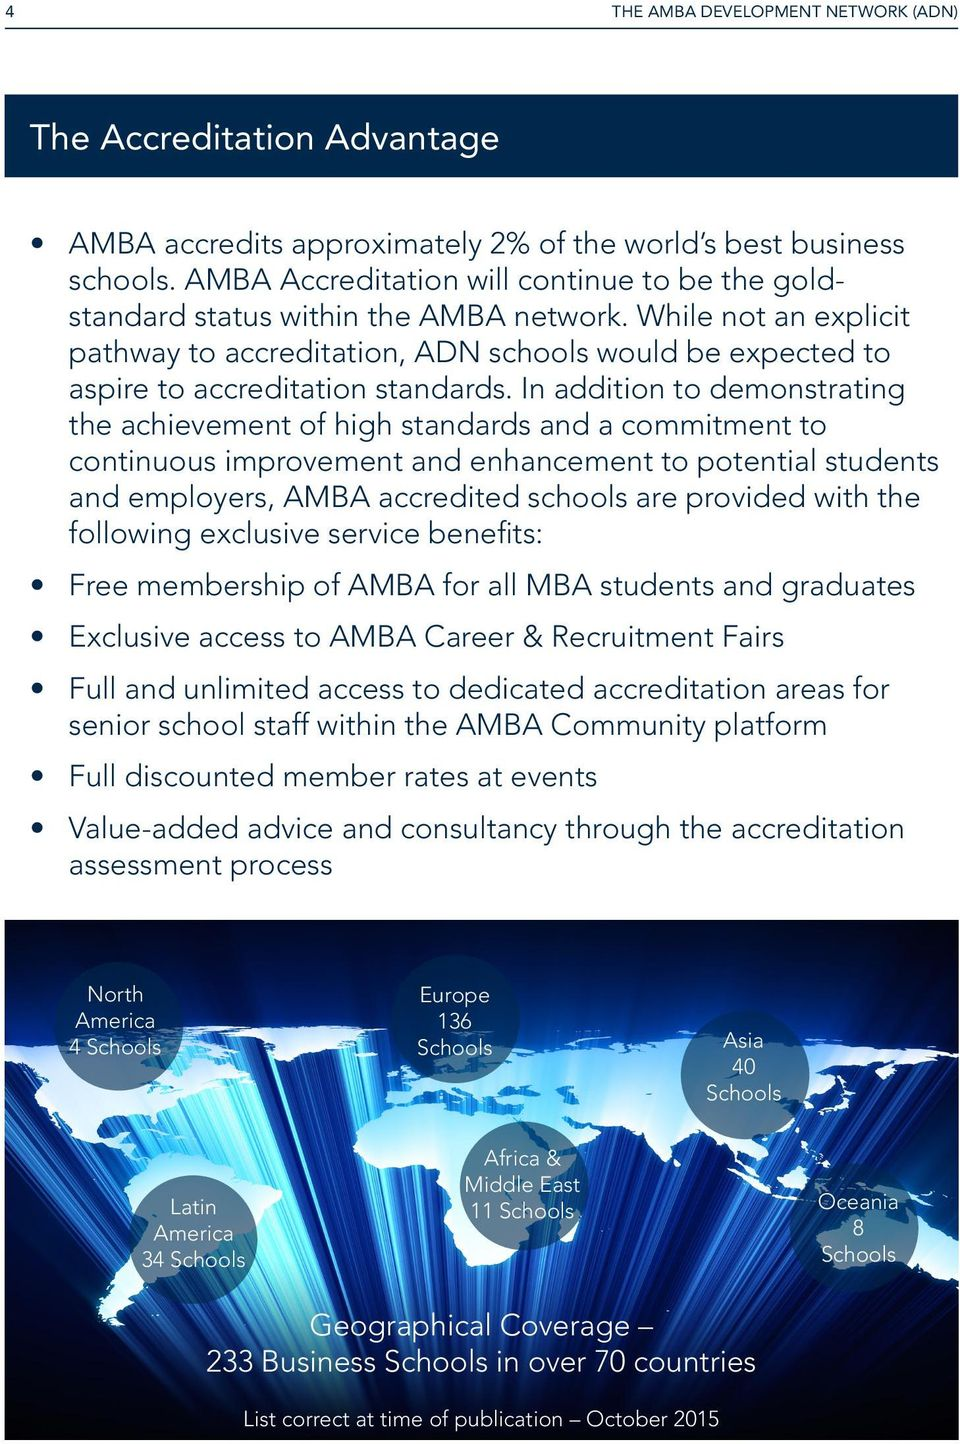 While not an explicit pathway to accreditation, ADN schools would be expected to aspire to accreditation standards.